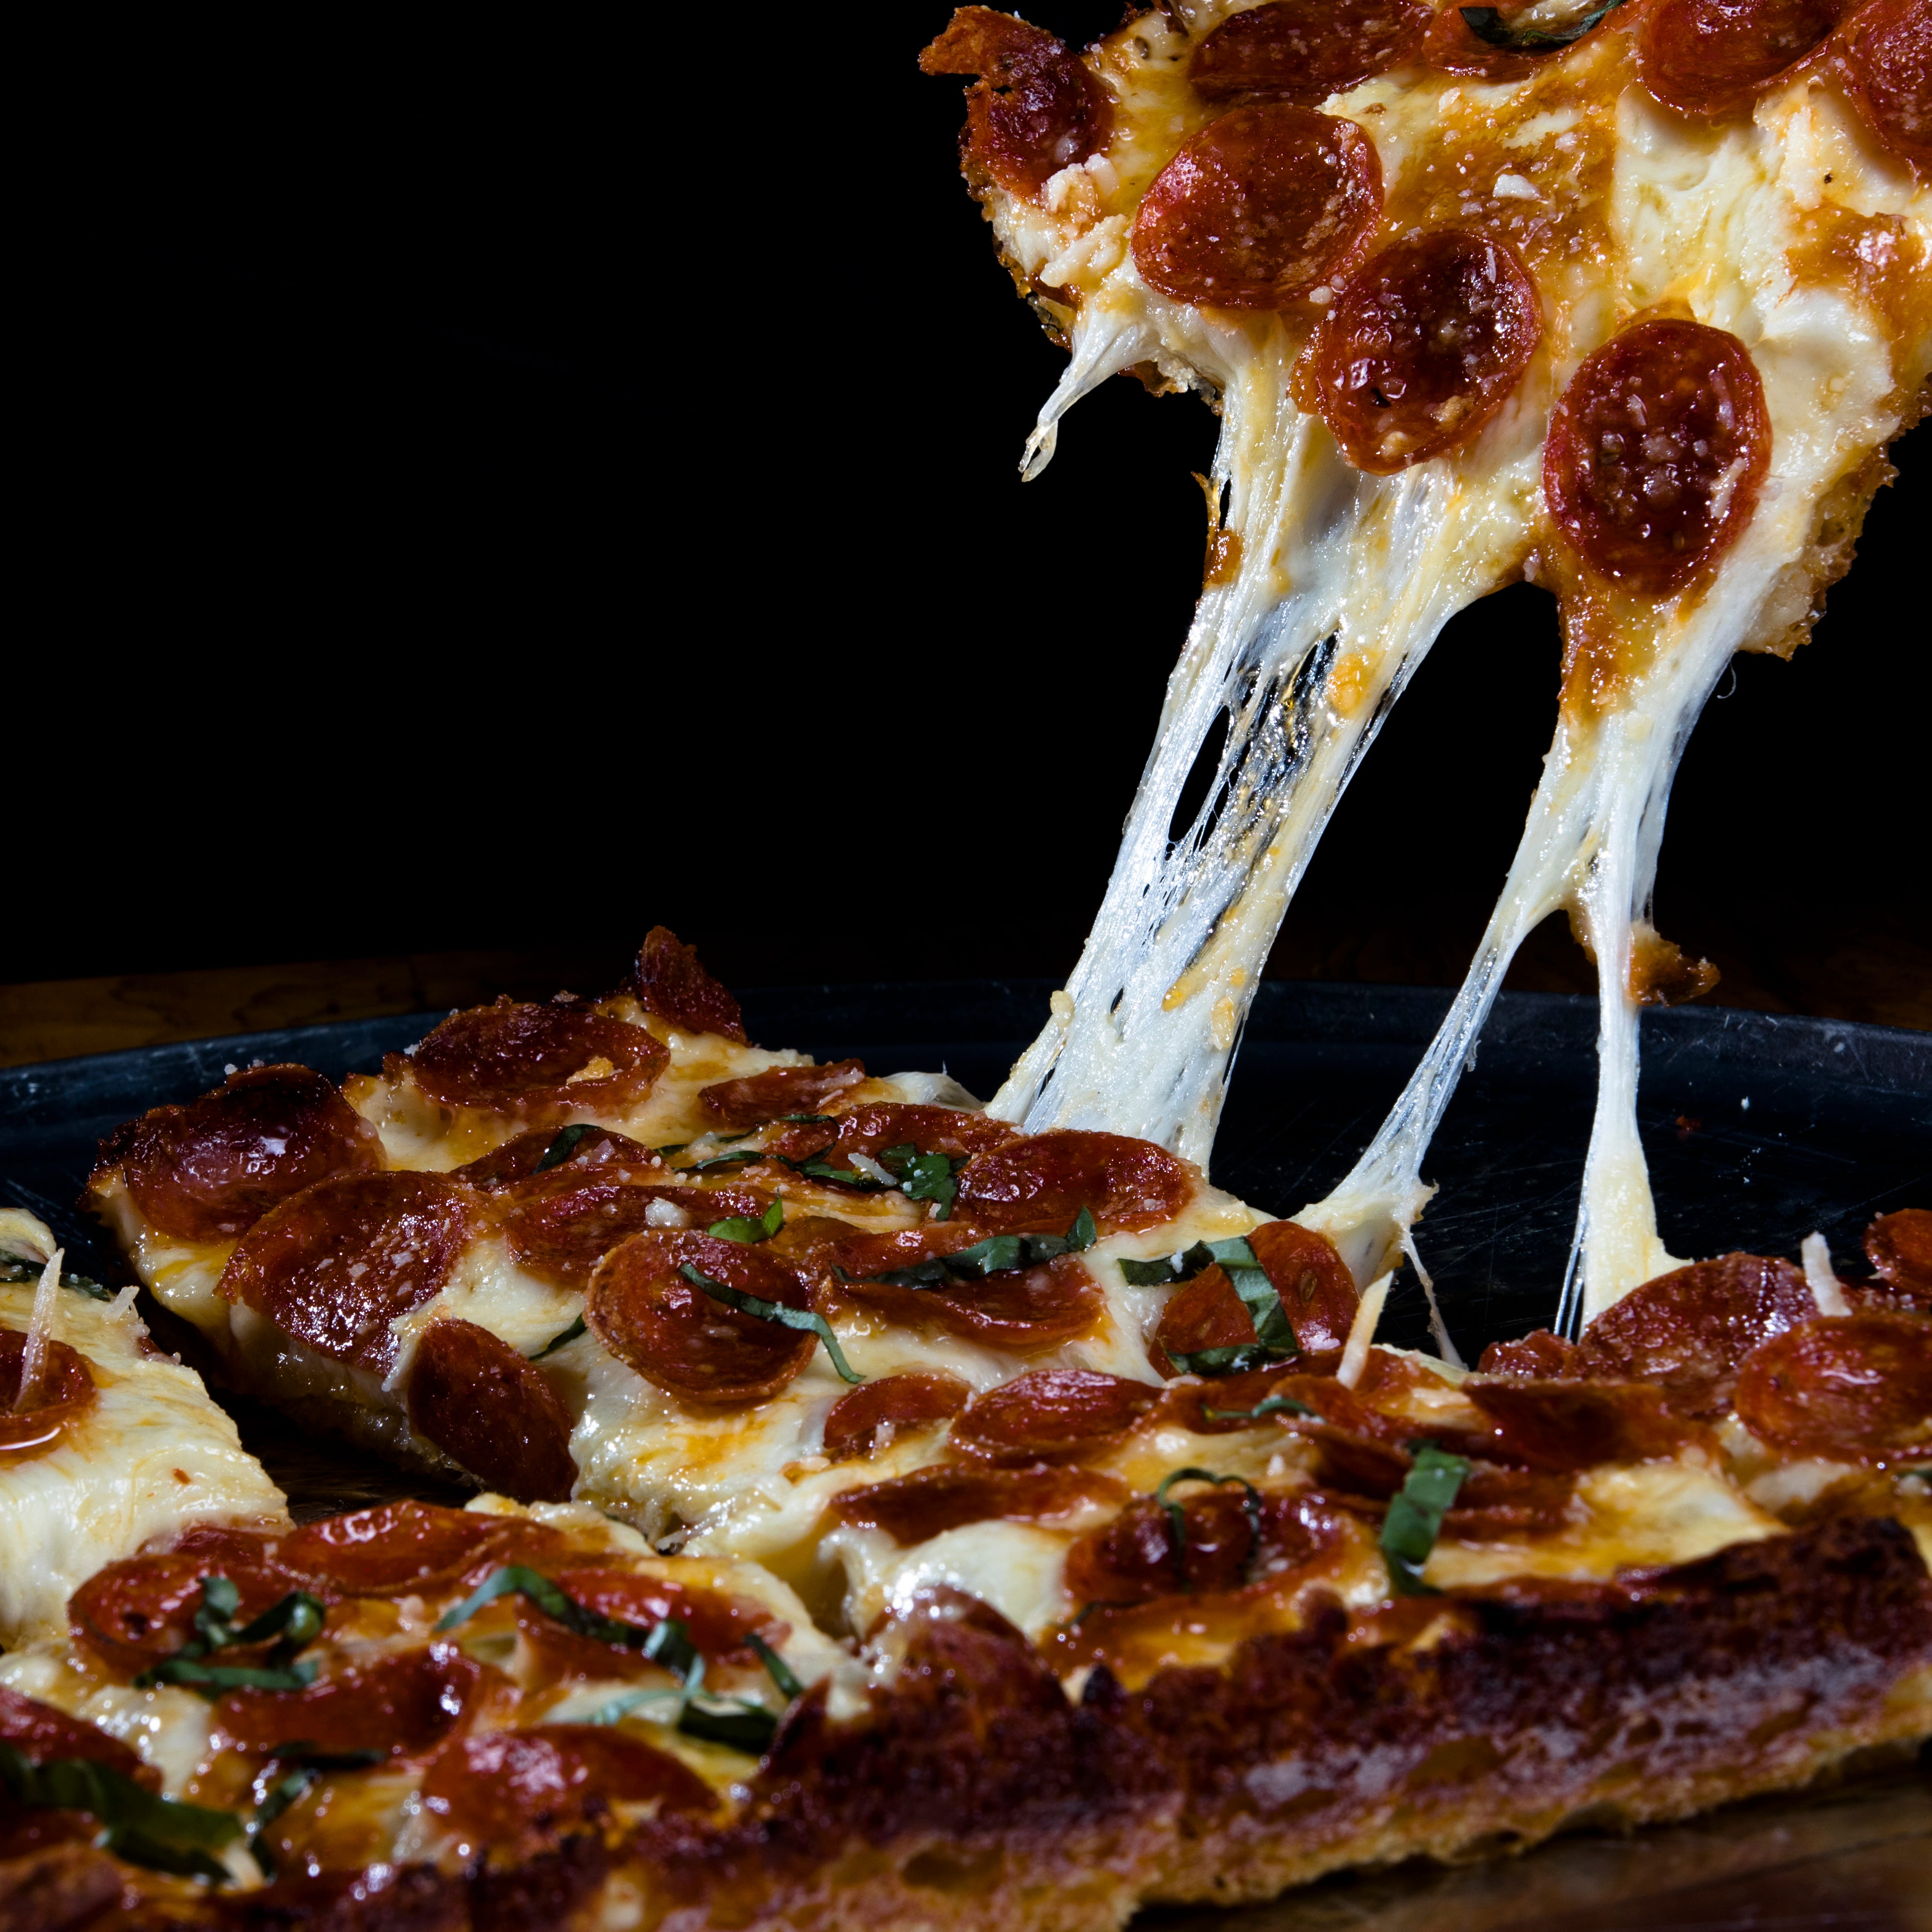 As American as pizza pie: All the regional styles you can eat here